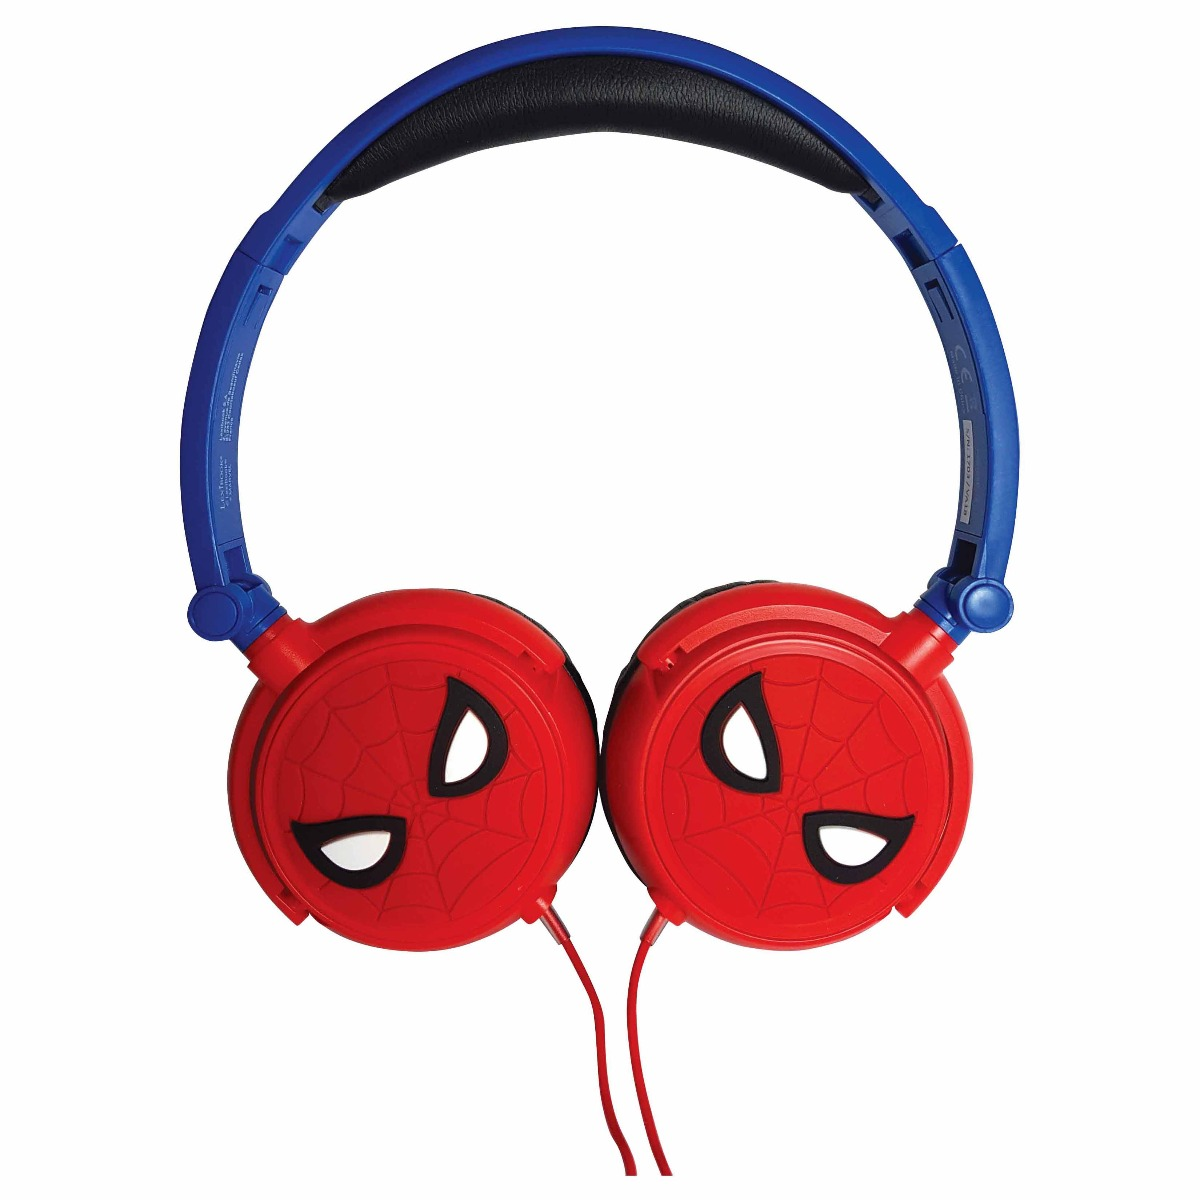 Casti audio cu fir pliabile, Spiderman